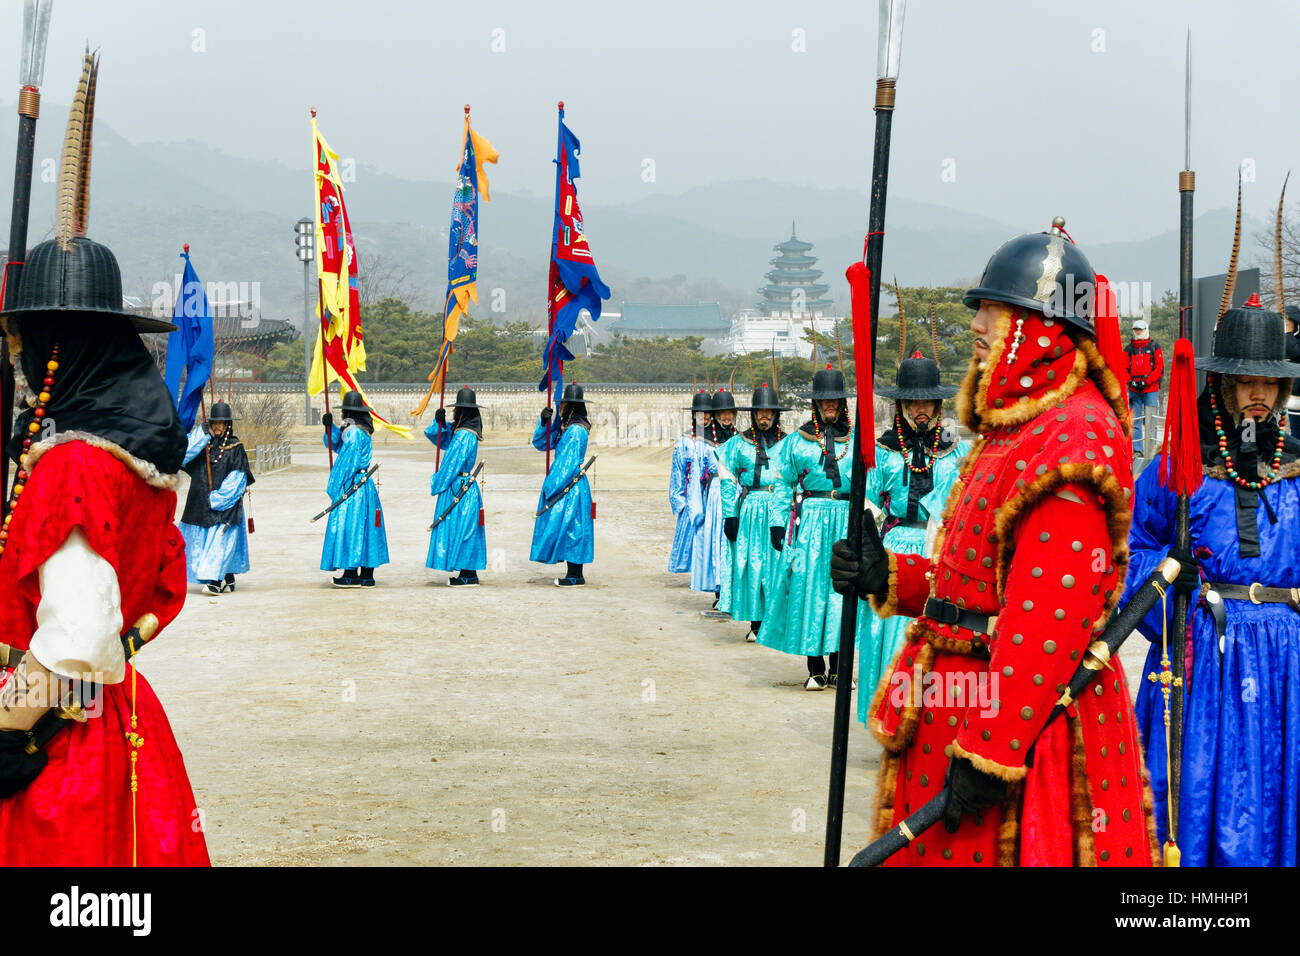 Royal Guard Inspection Ceremony, Gyeongbokgung Palace, Seoul, South Korea - Stock Image